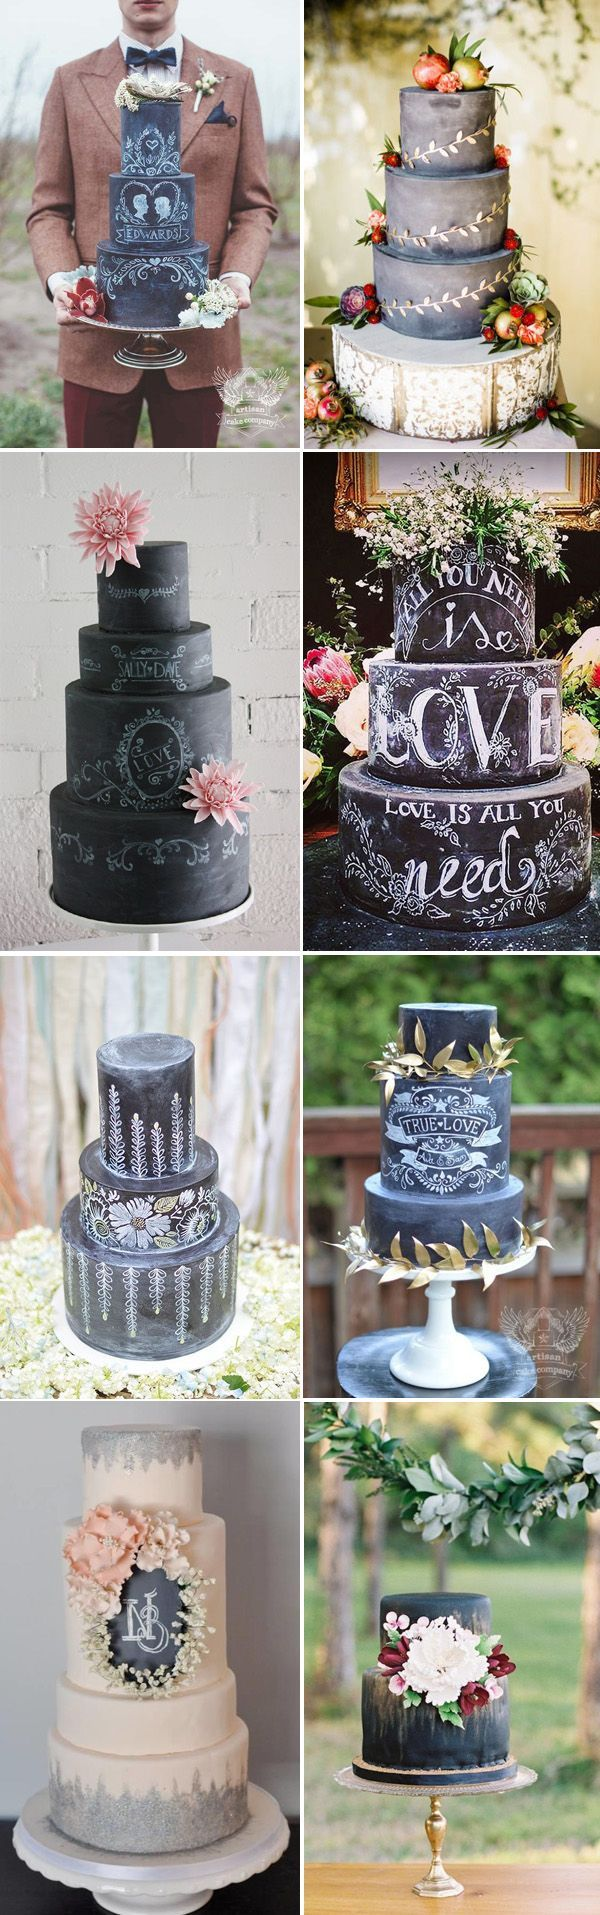 Rustic Wedding Cake Ideas - Black and White Chalkboard Wedding Cakes